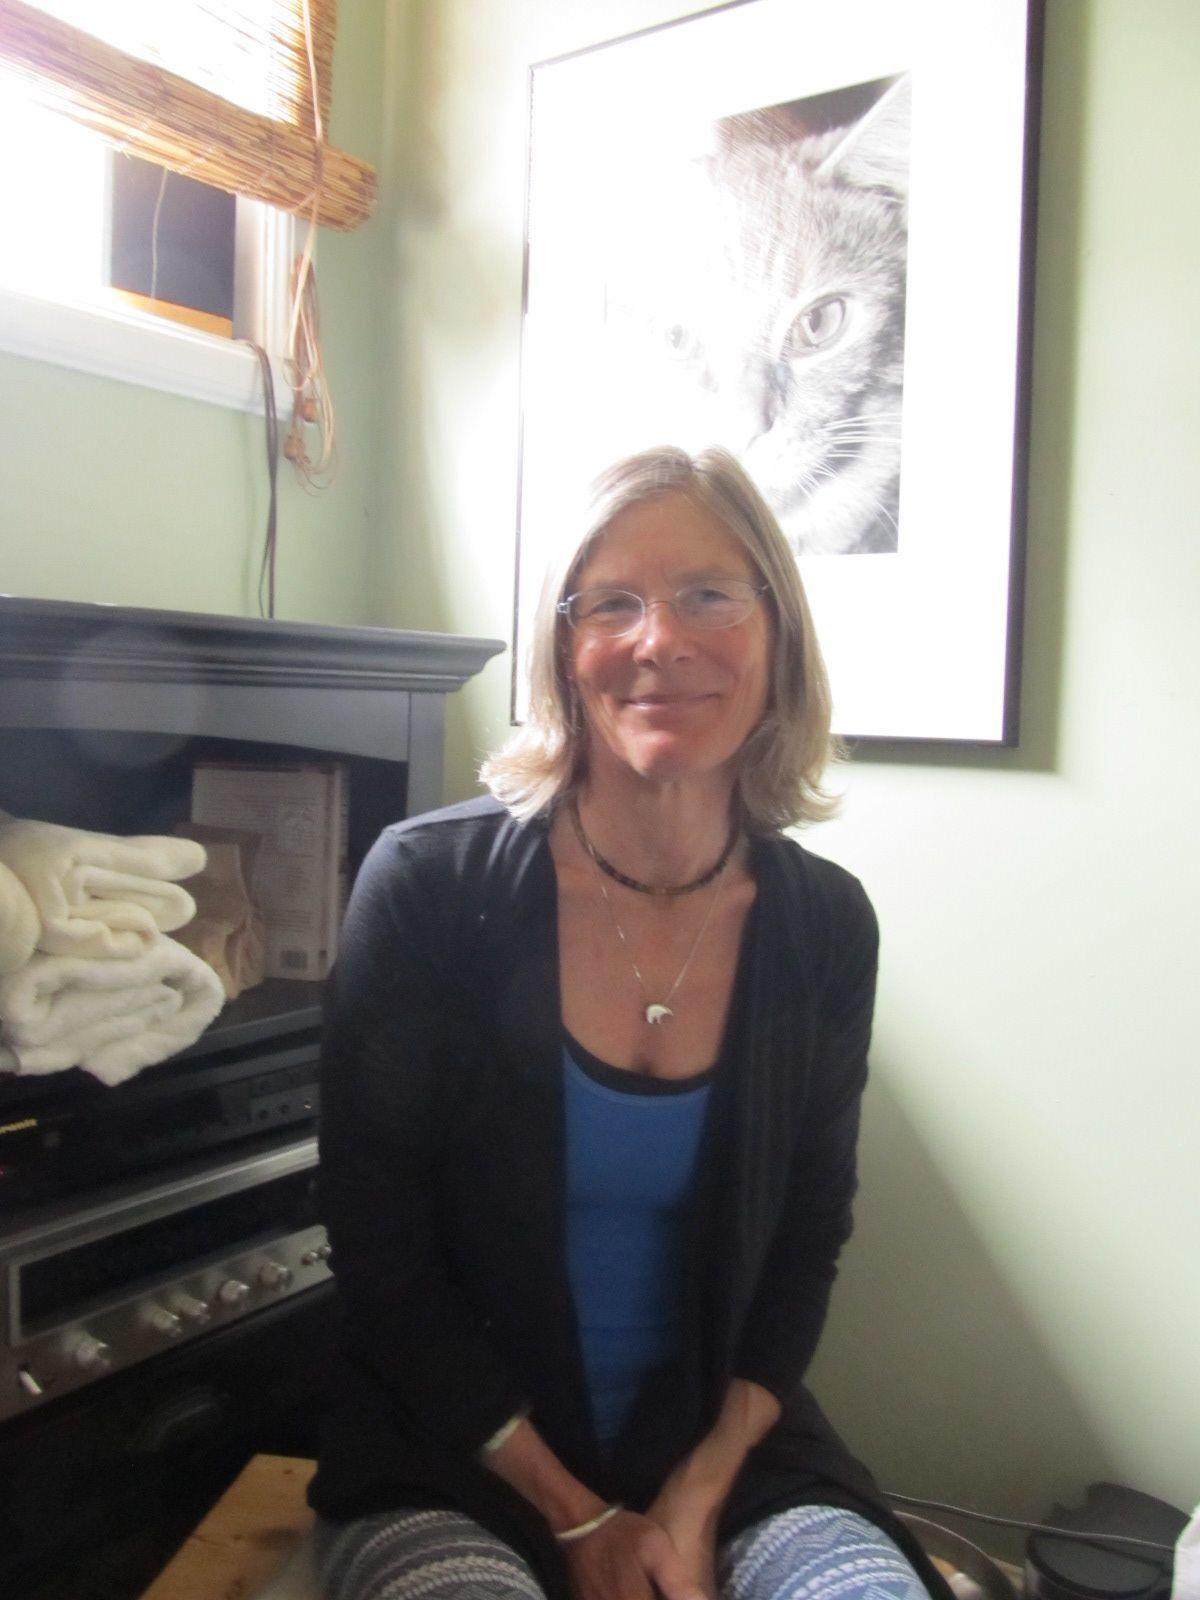 A 'wholistic' encounter with reflexologist Kathleen Dudley